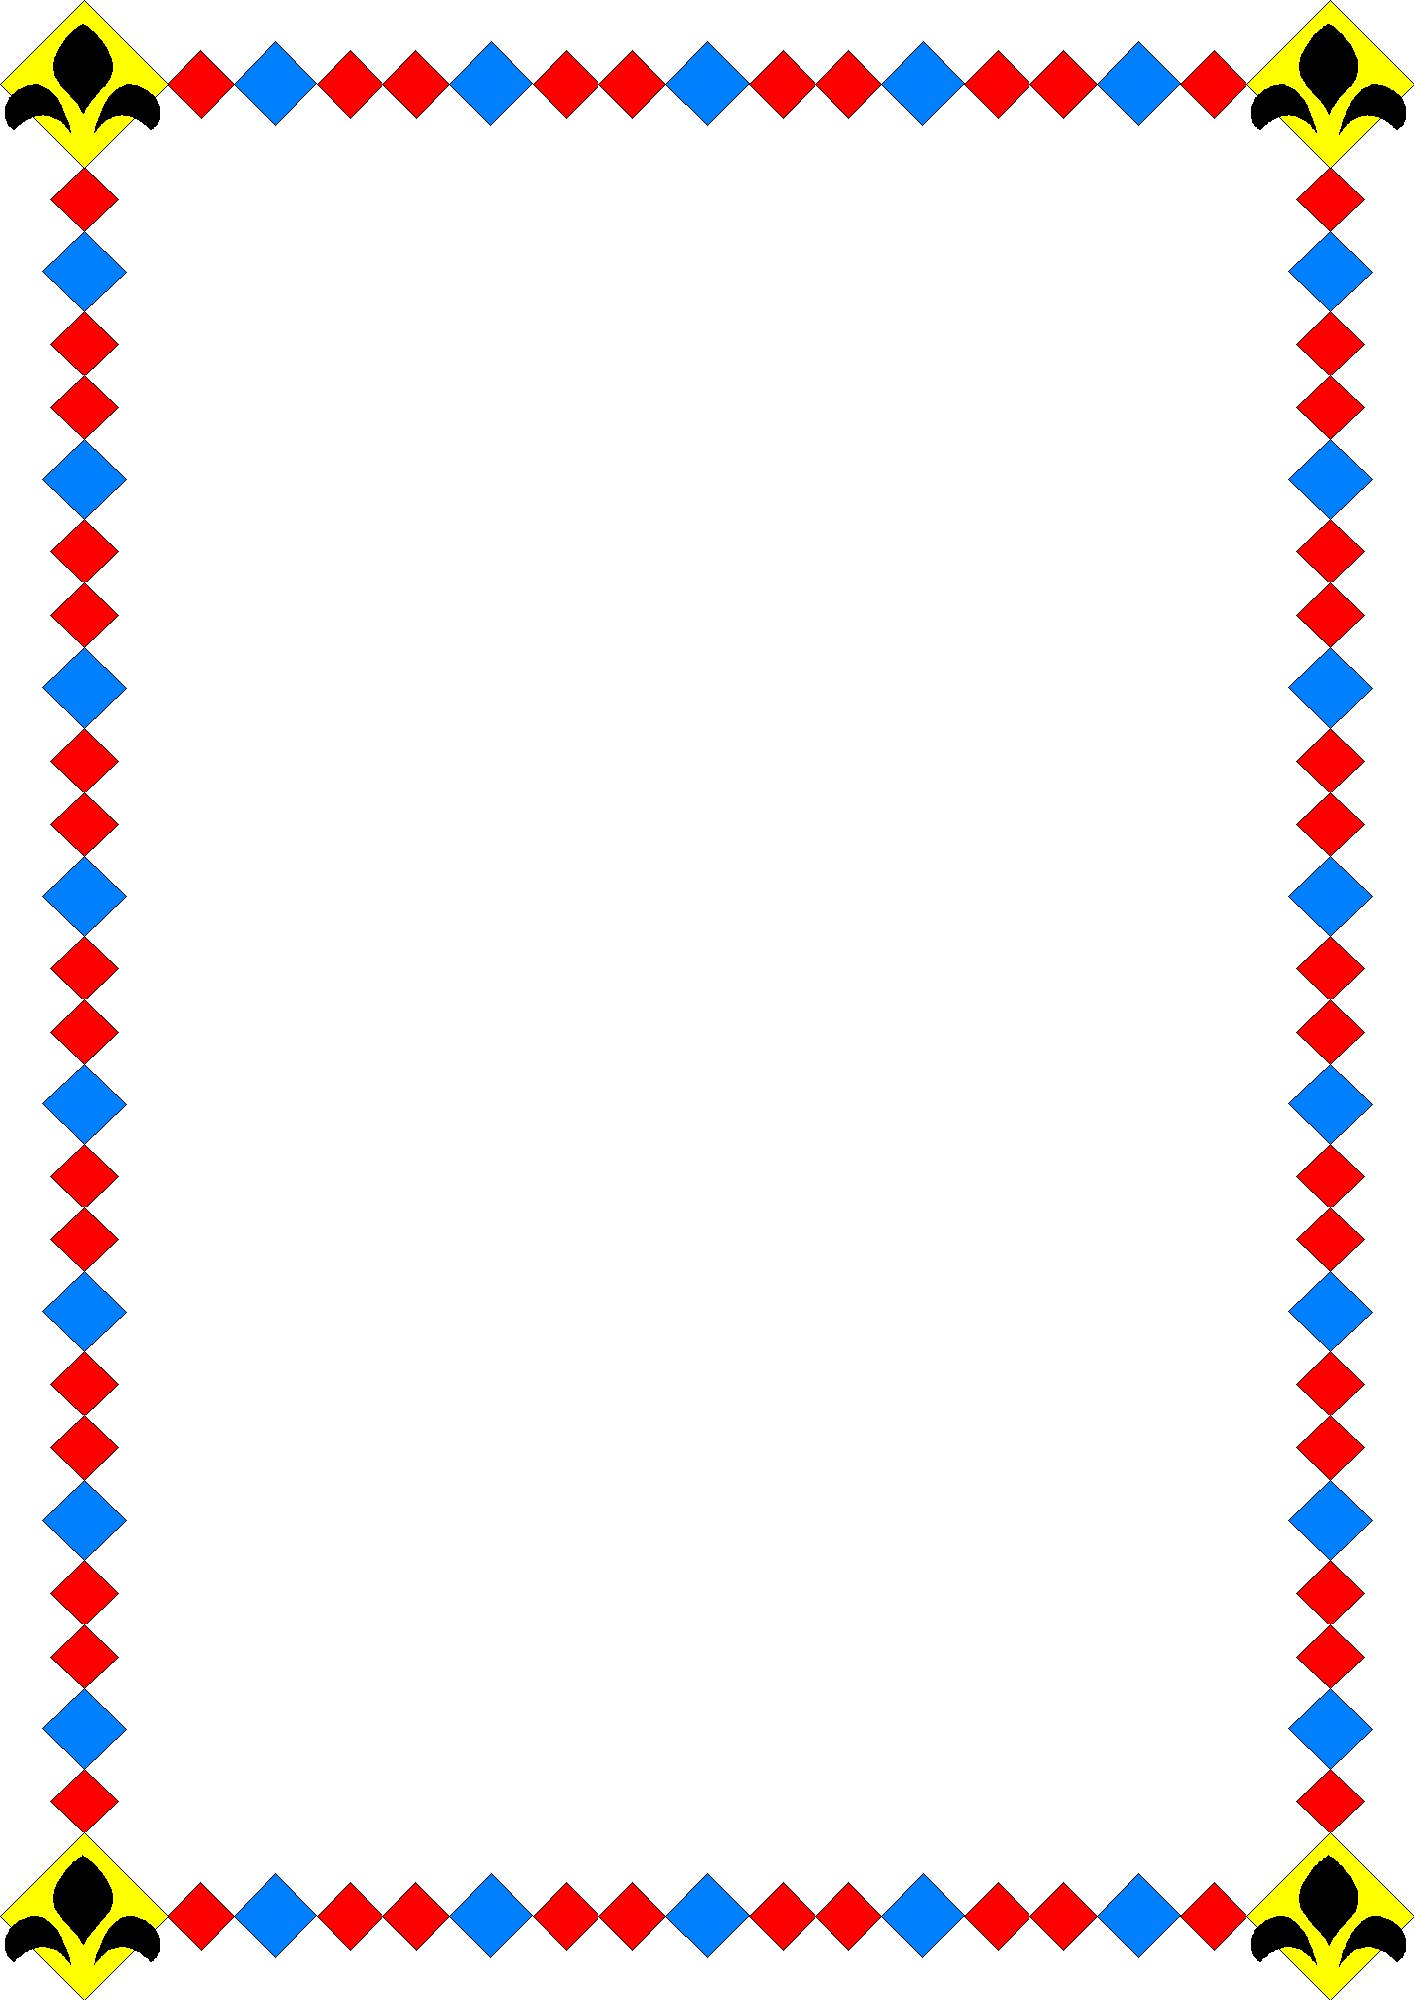 Border Frame Clip Art   Clipart Panda   Free Clipart Images